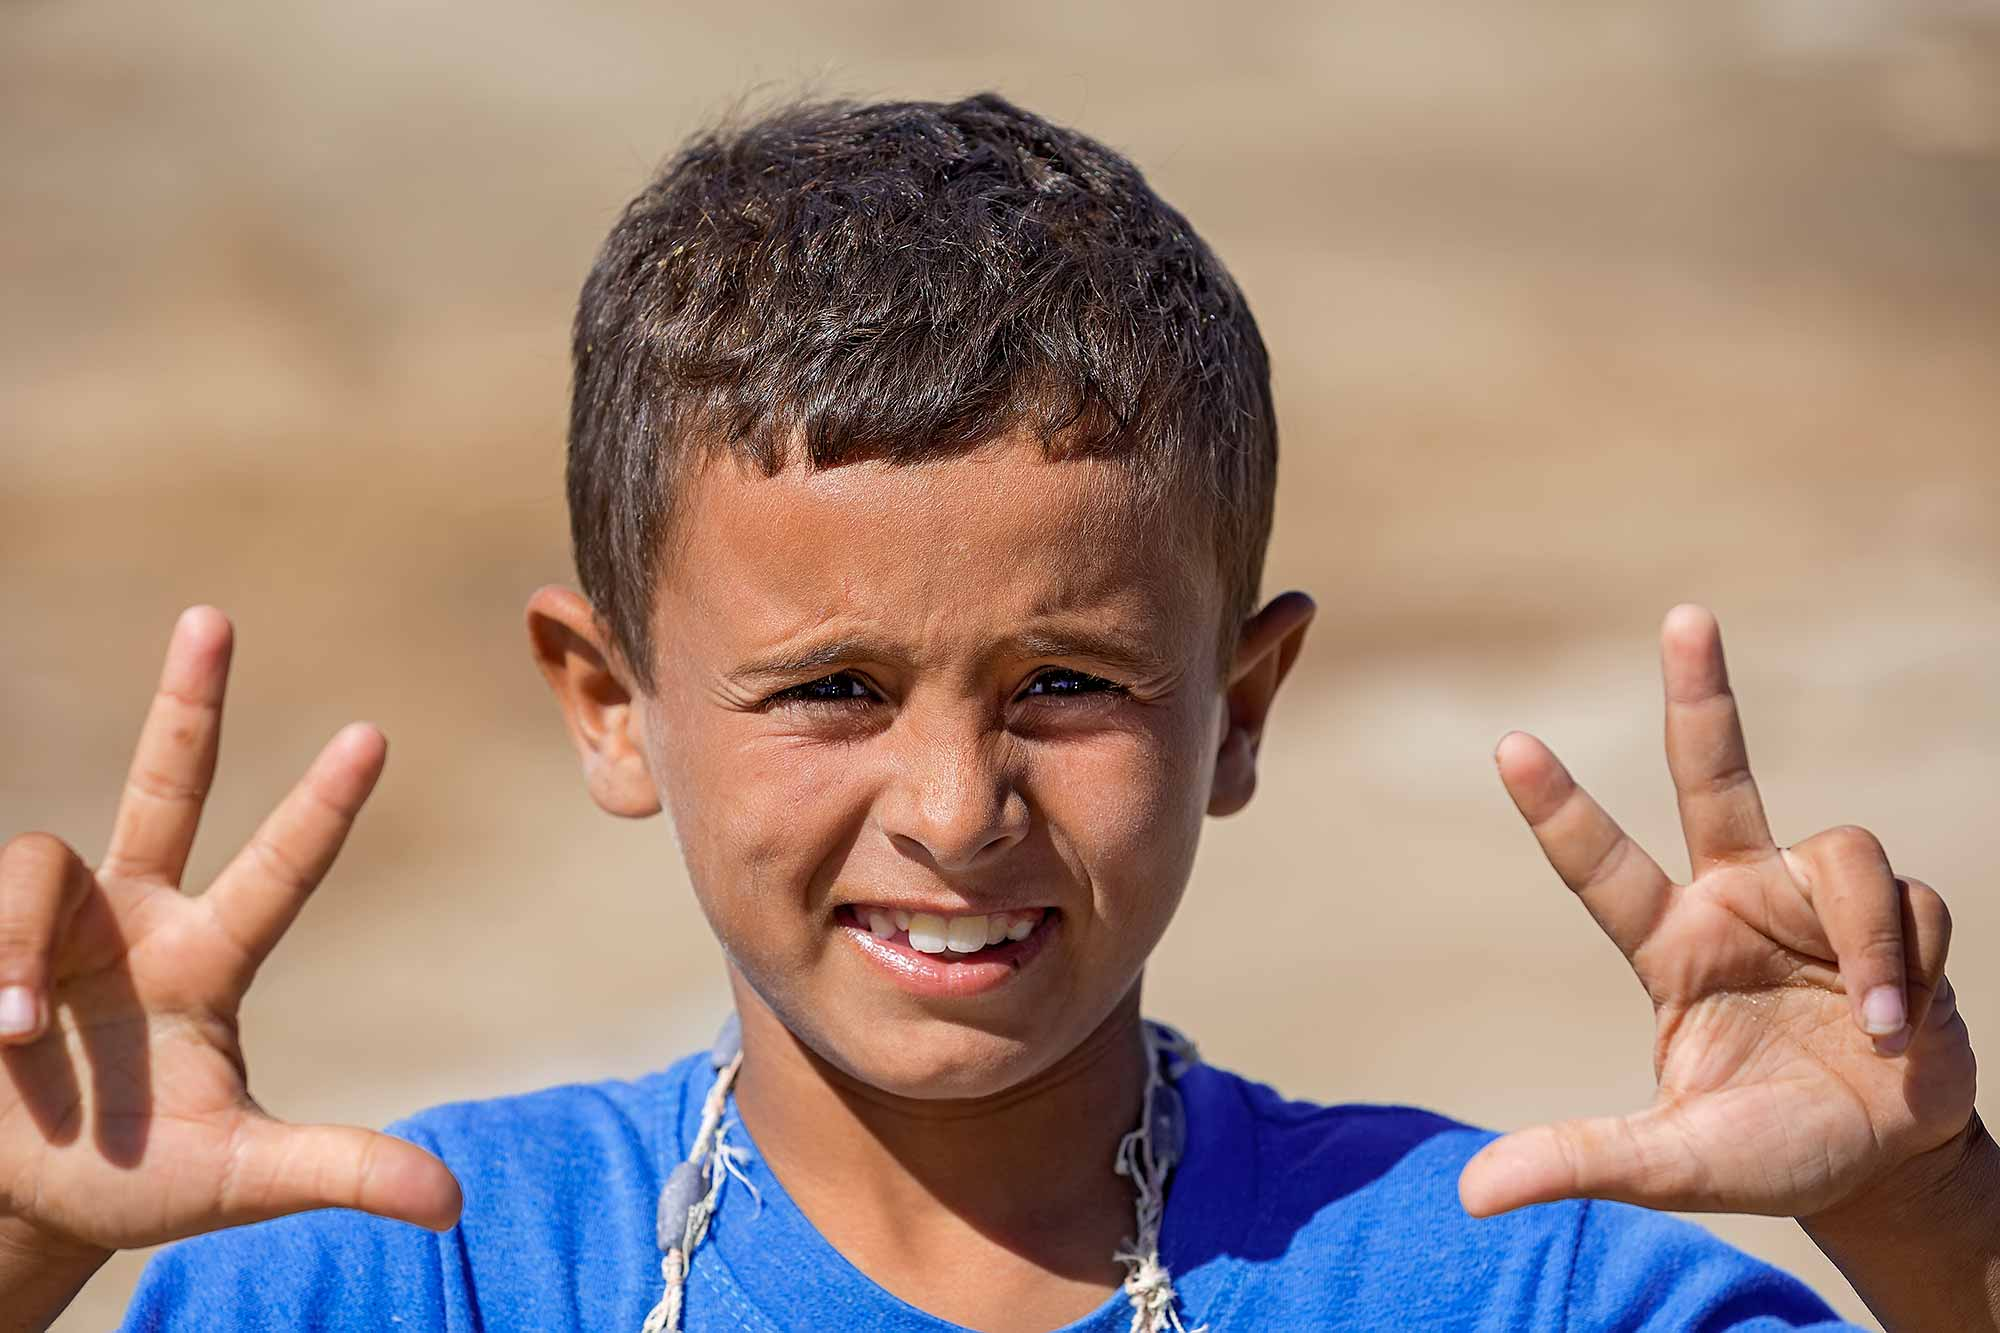 Portrait of a boy in Salalah. © Ulli Maier & Nisa Maier